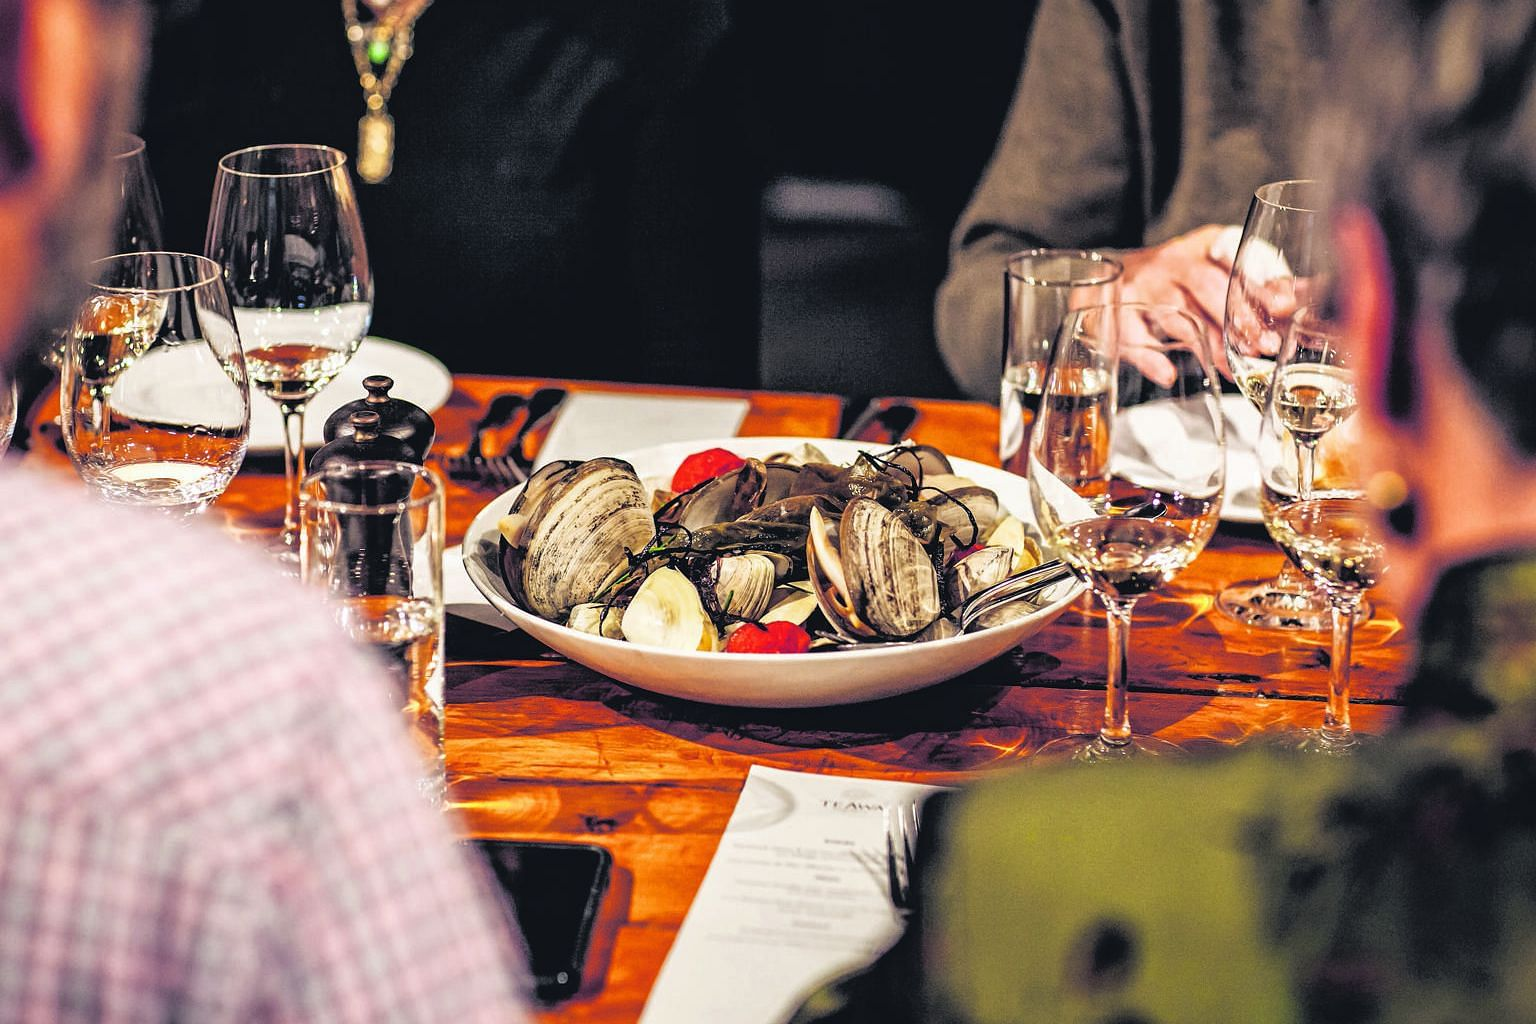 Hawke's Bay's biannual Food and Wine Classic culinary festival shines a light on local producers, chefs and produce.